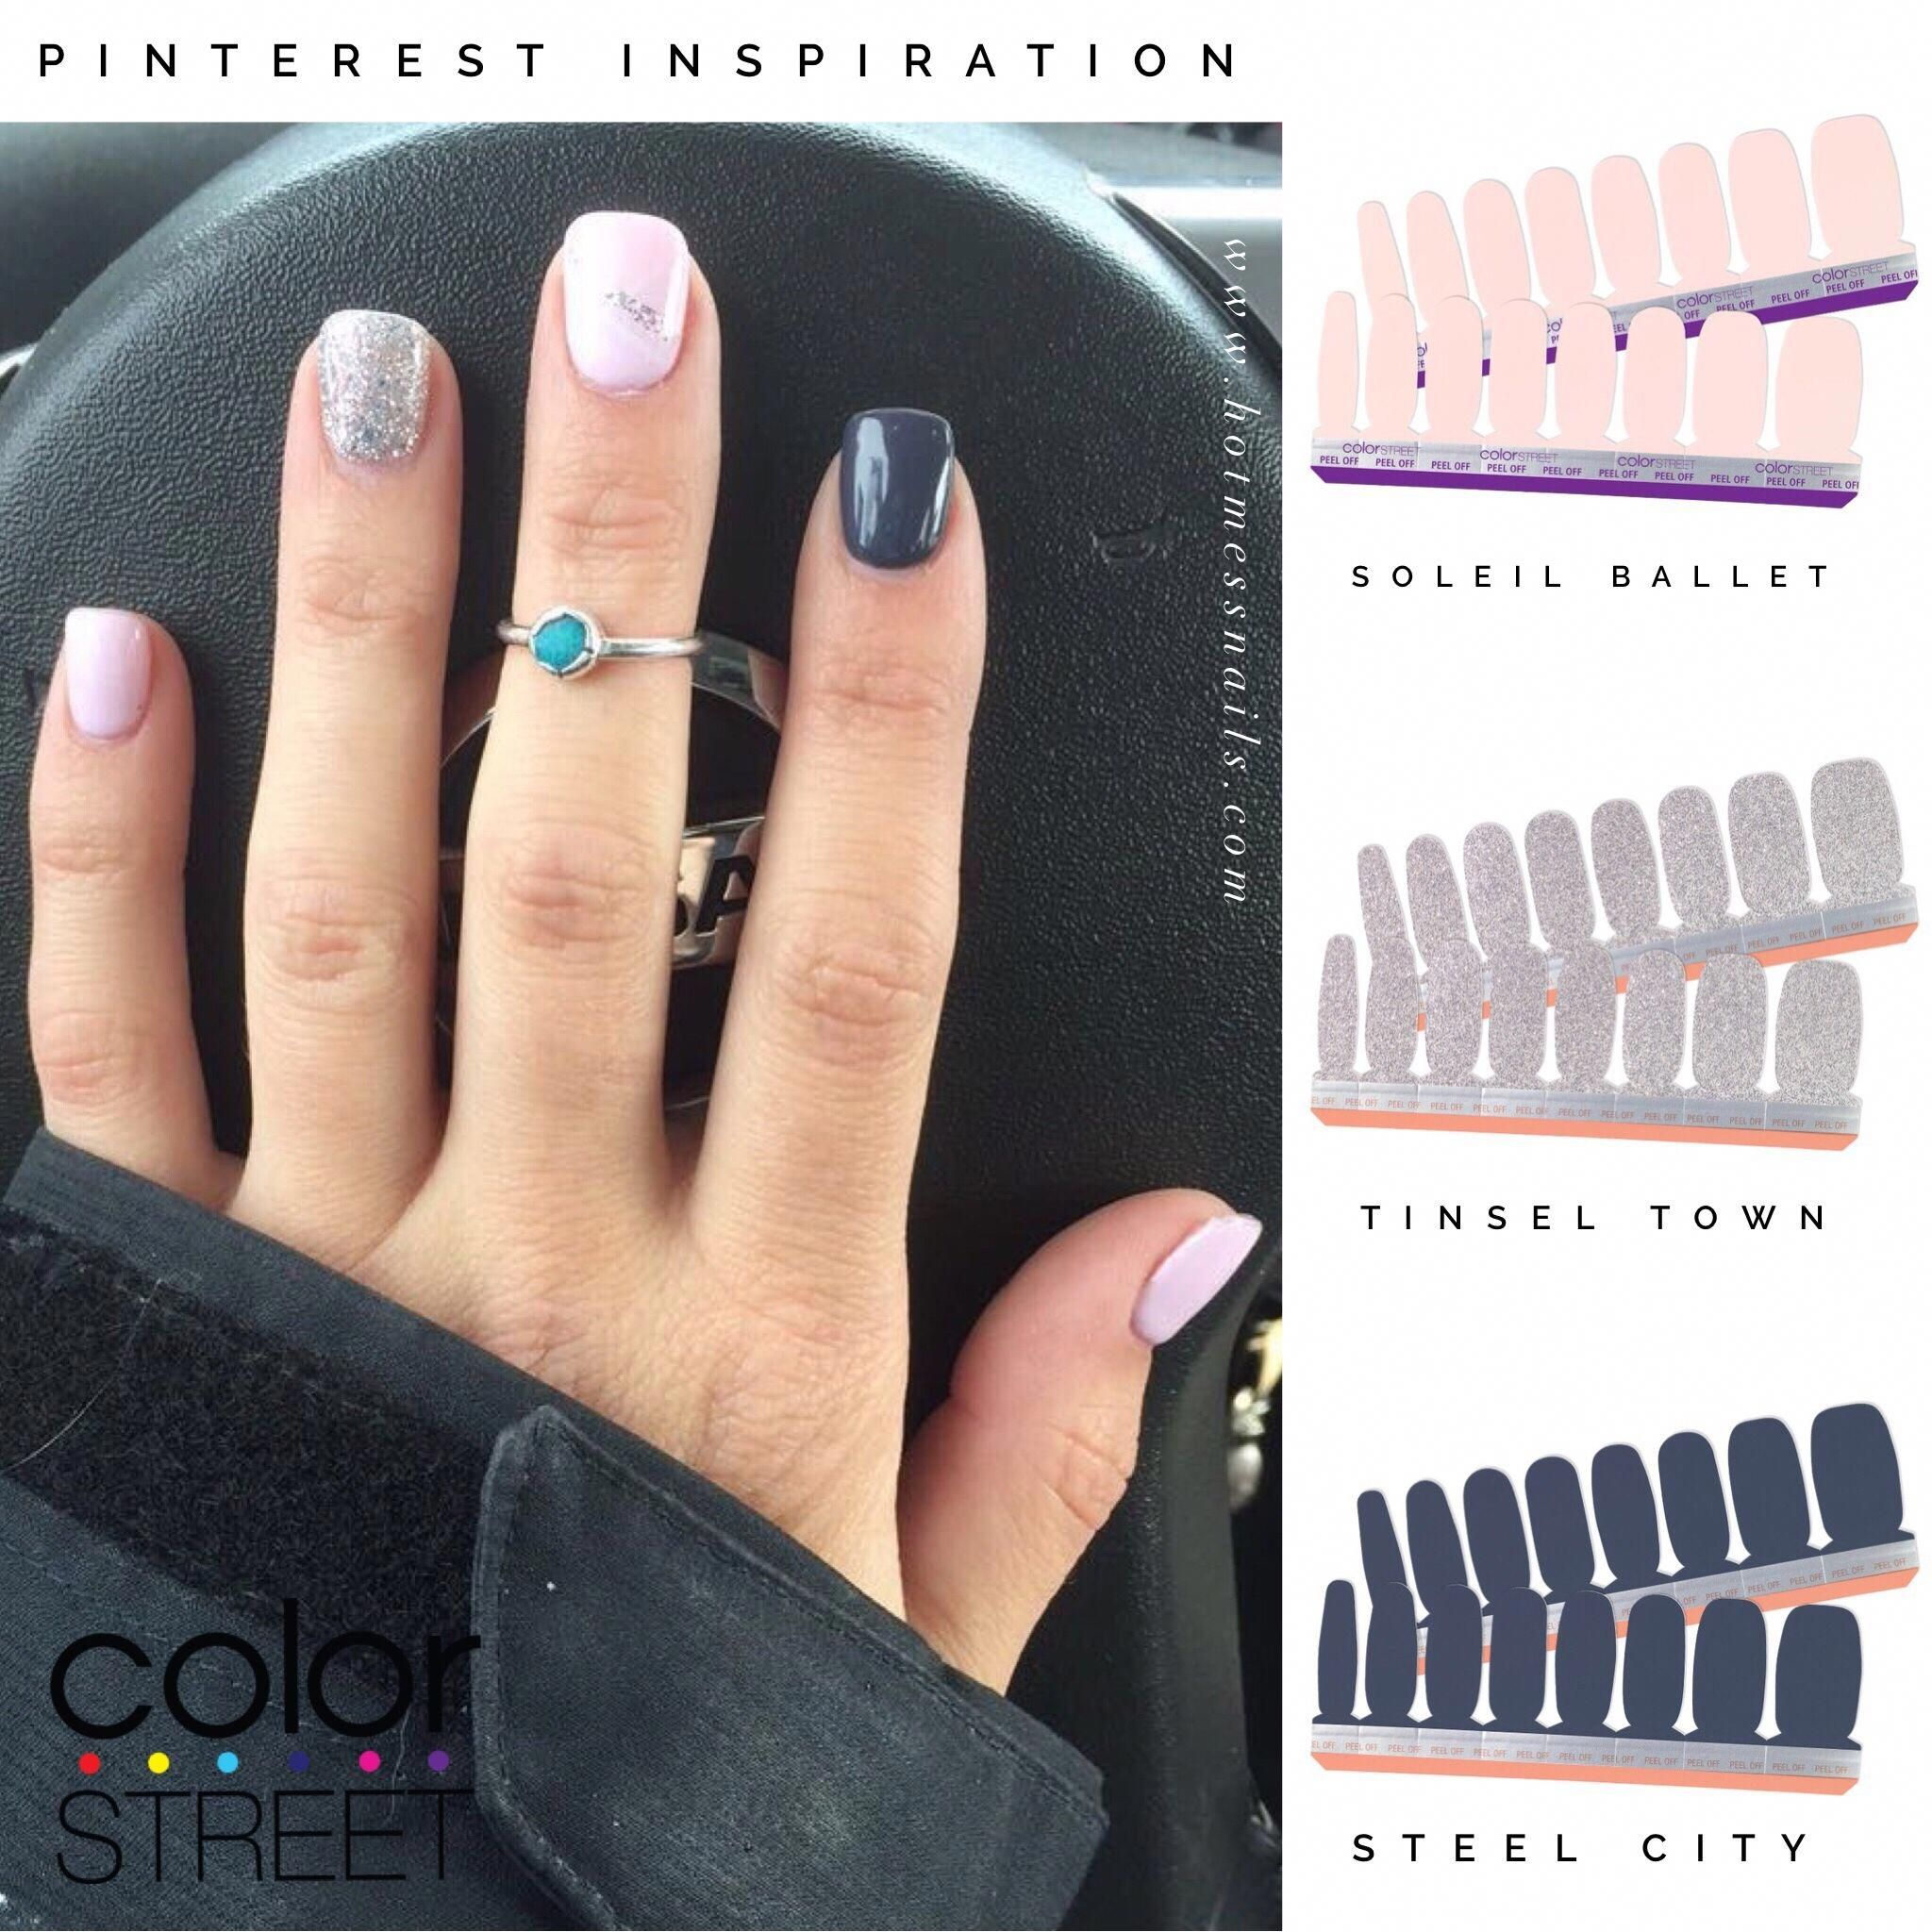 Use These Shades To Create At Home Manicure With 100 Dry Nail Polish For A Fraction Of The Cost Becol Color Street Nails Dry Nails Dry Nail Polish